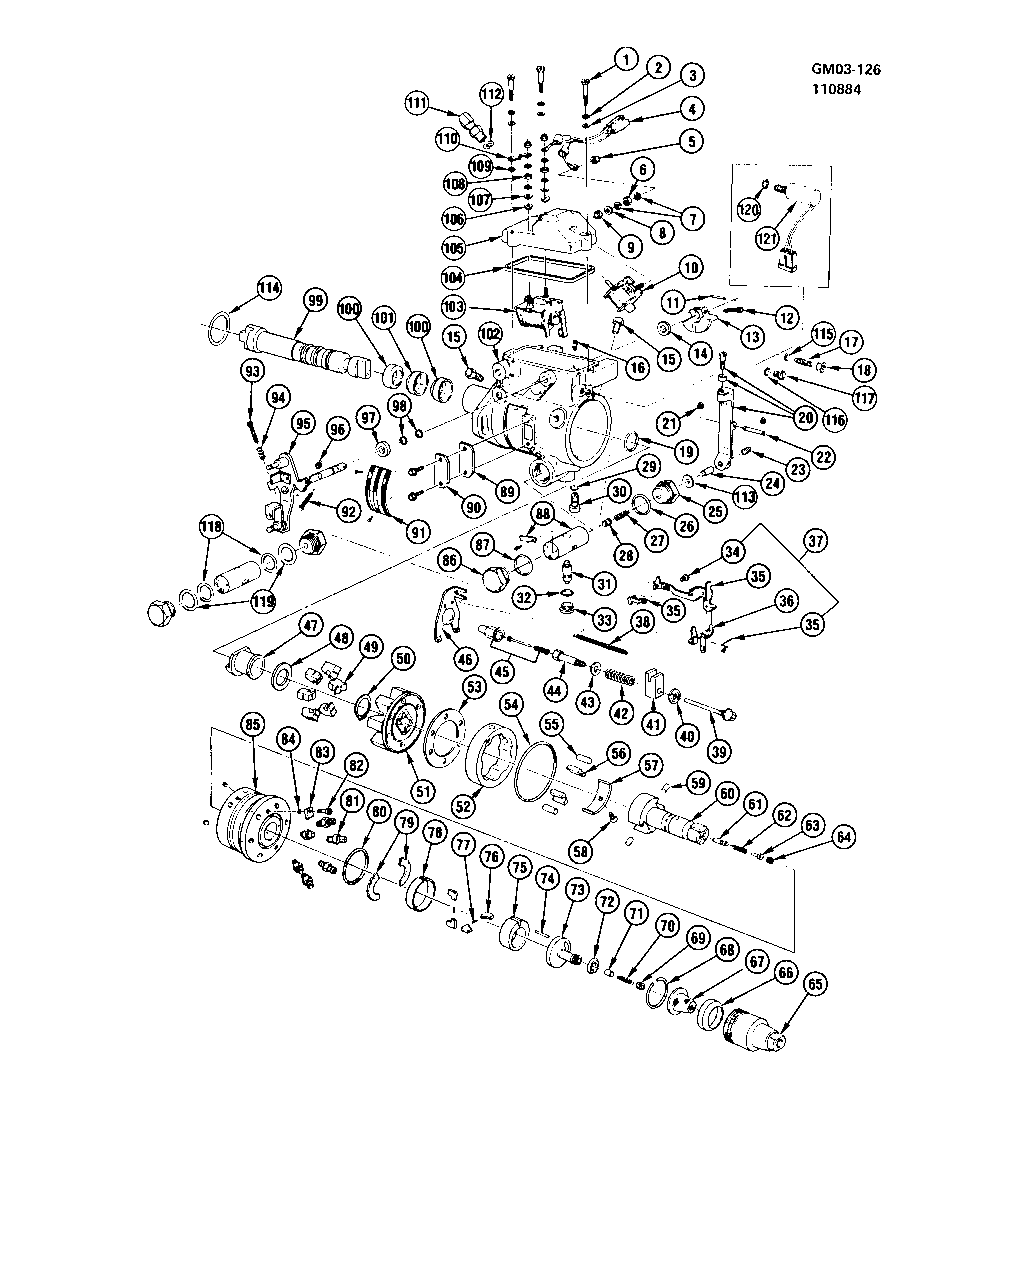 1982-1984 A INJECTION PUMP/FUEL-TYPICAL (ROOSA-MASTER